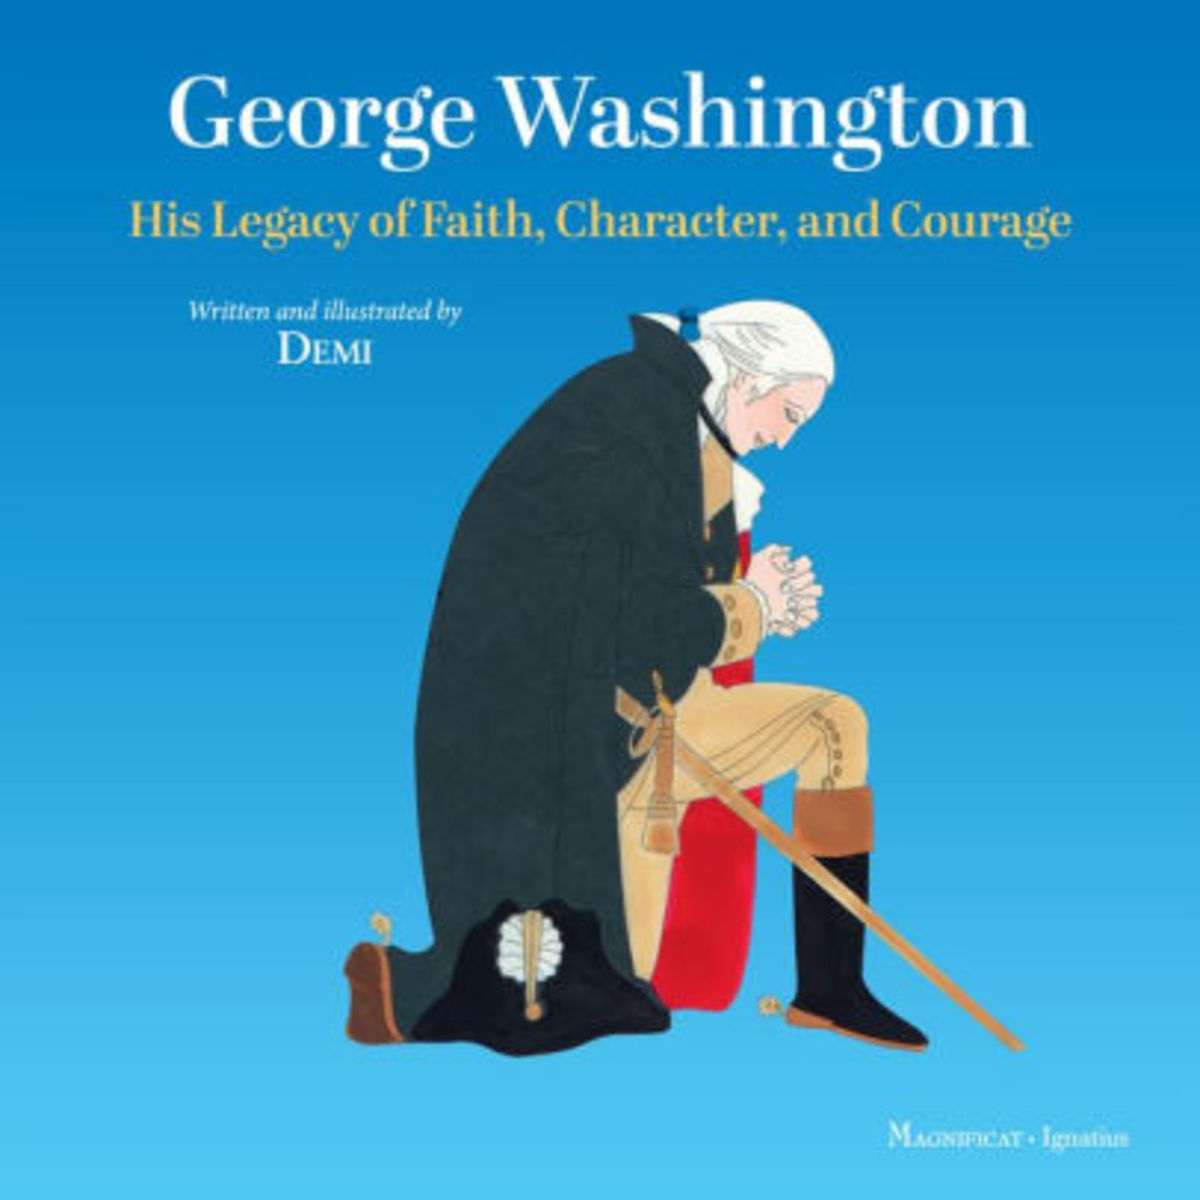 George Washington: His Legacy of Faith, Character, and Courage by Demi - This image is from barnesandnoble .com.